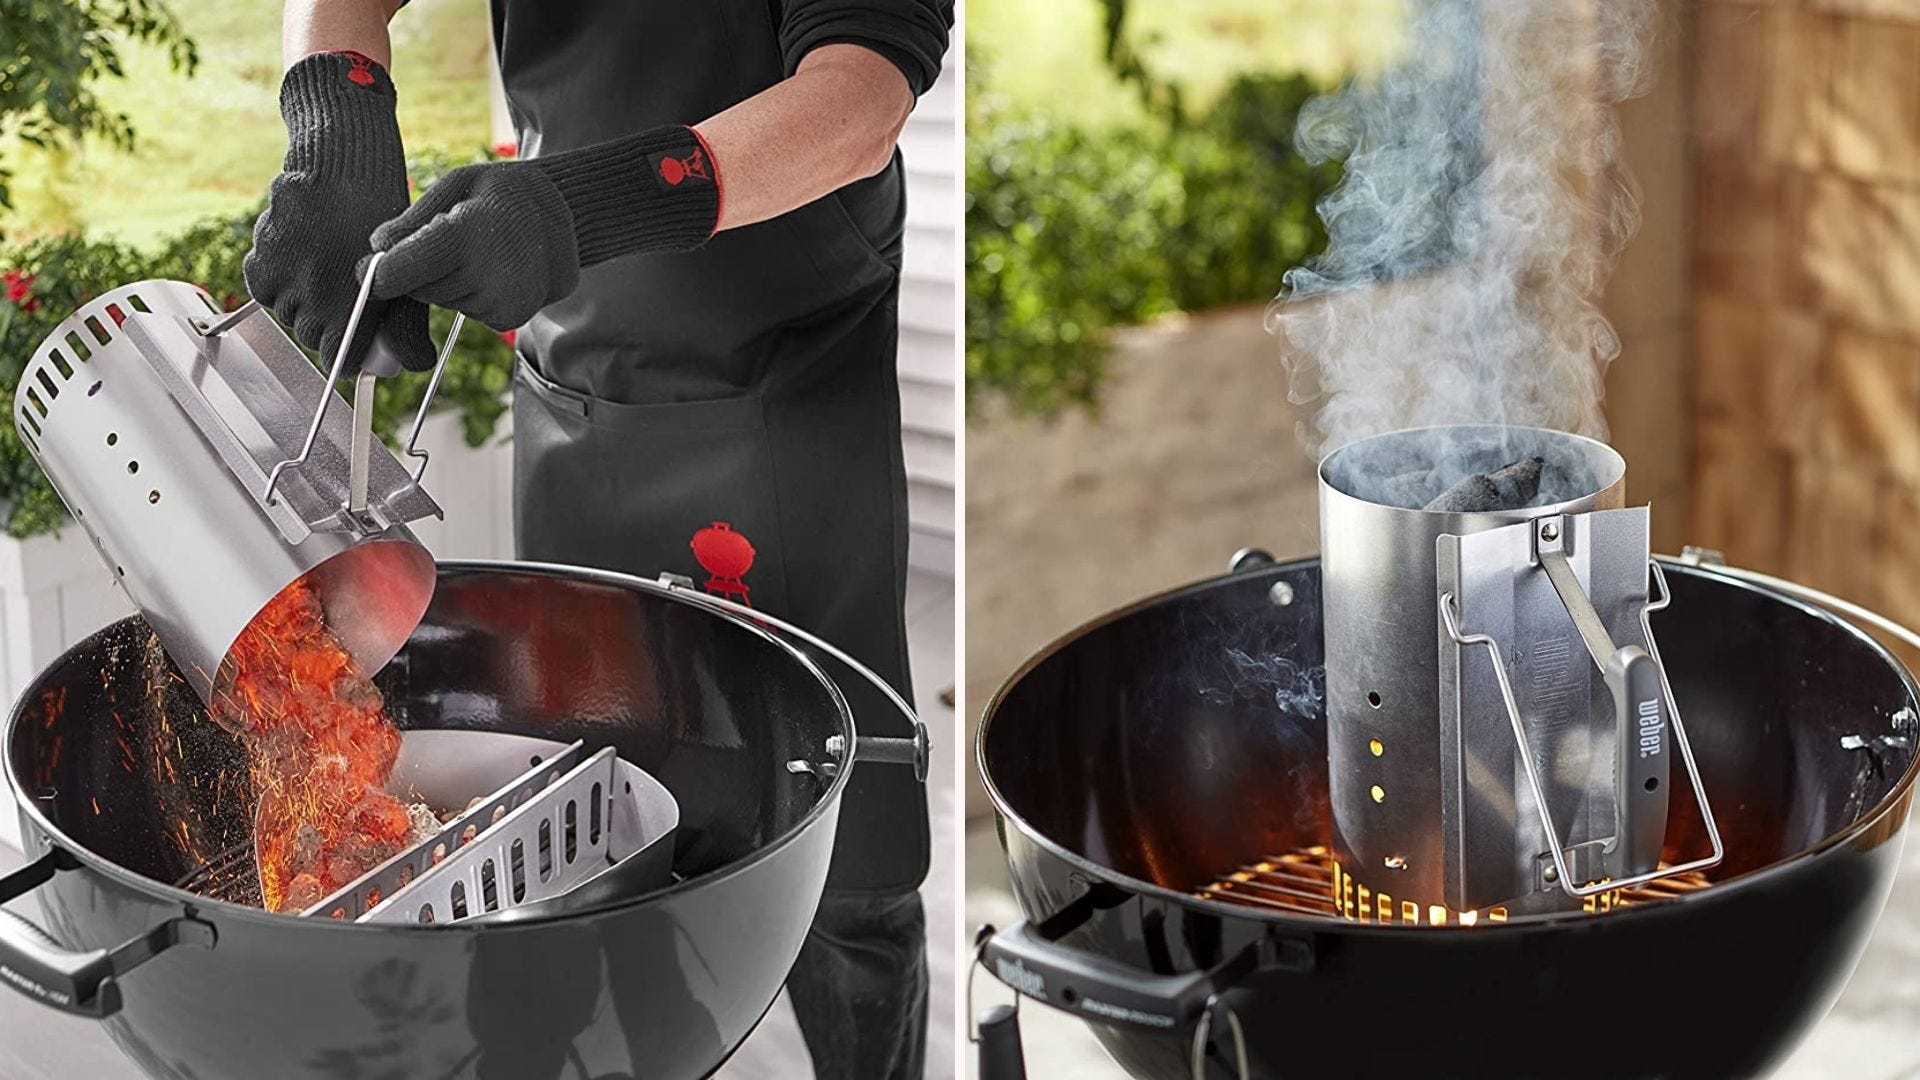 Two images: The left image is of someone pouring hot coals out of a Weber chimney starter and the right image is of the chimney starter smoking hot and ready to pour into the charcoal grill.